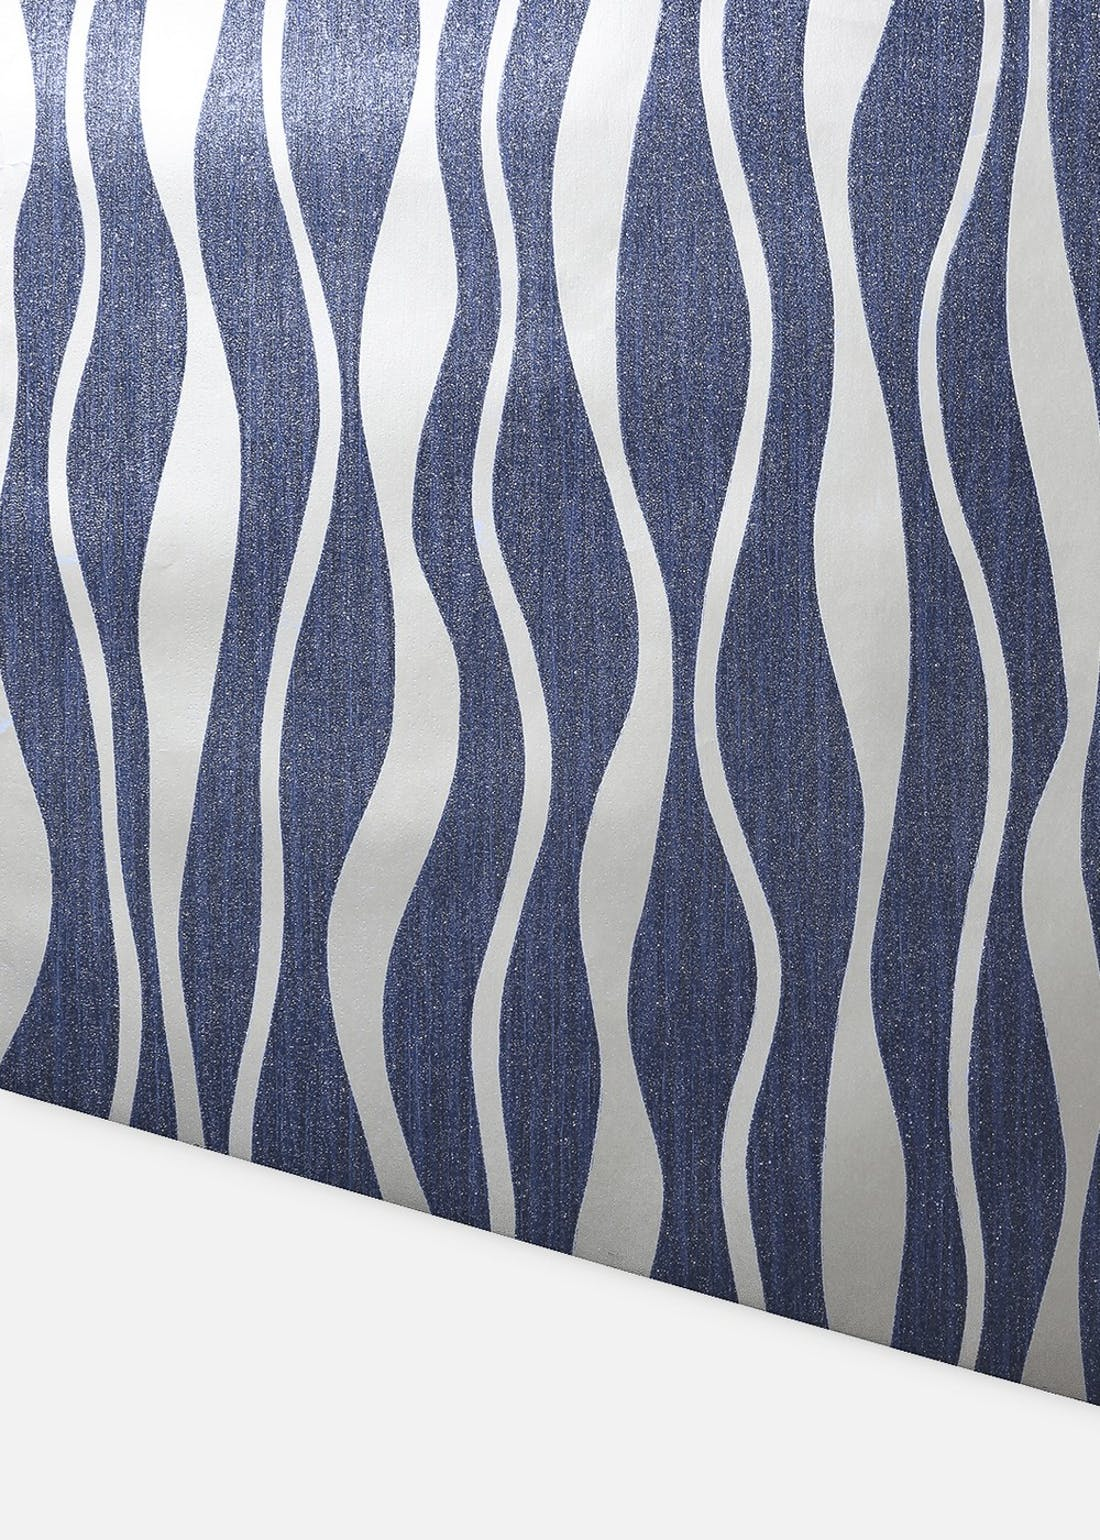 Arthouse Navy & Silver Metallic Wave Wallpaper (10.05m x 53cm)